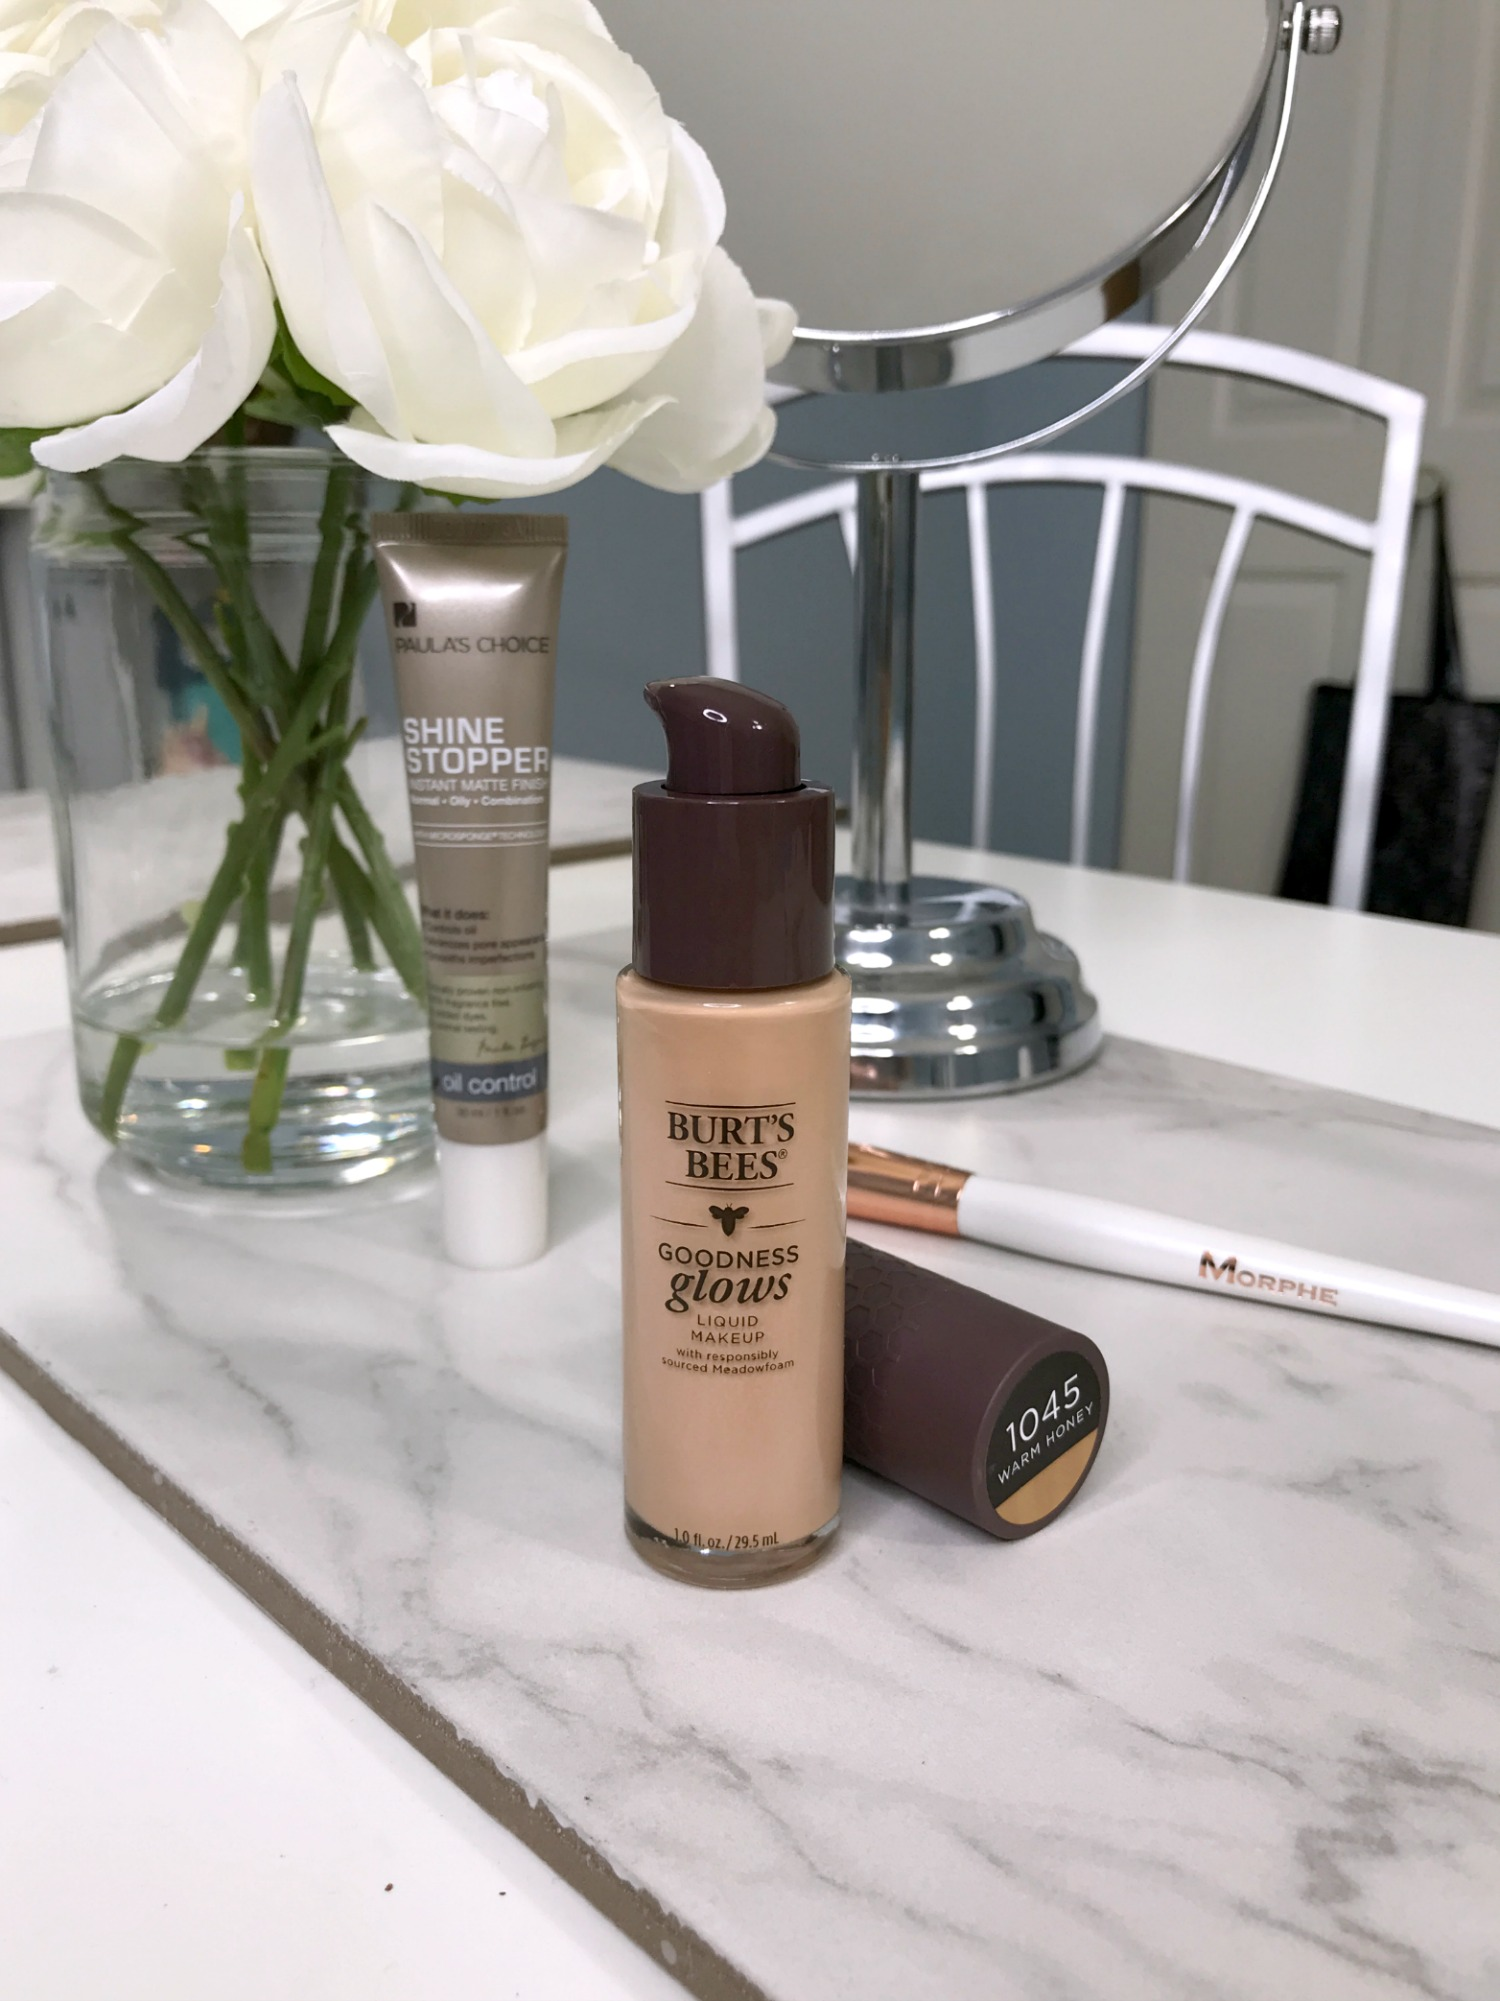 Burt's Bees Goodness Glows Foundation Review 1045 Warm Honey